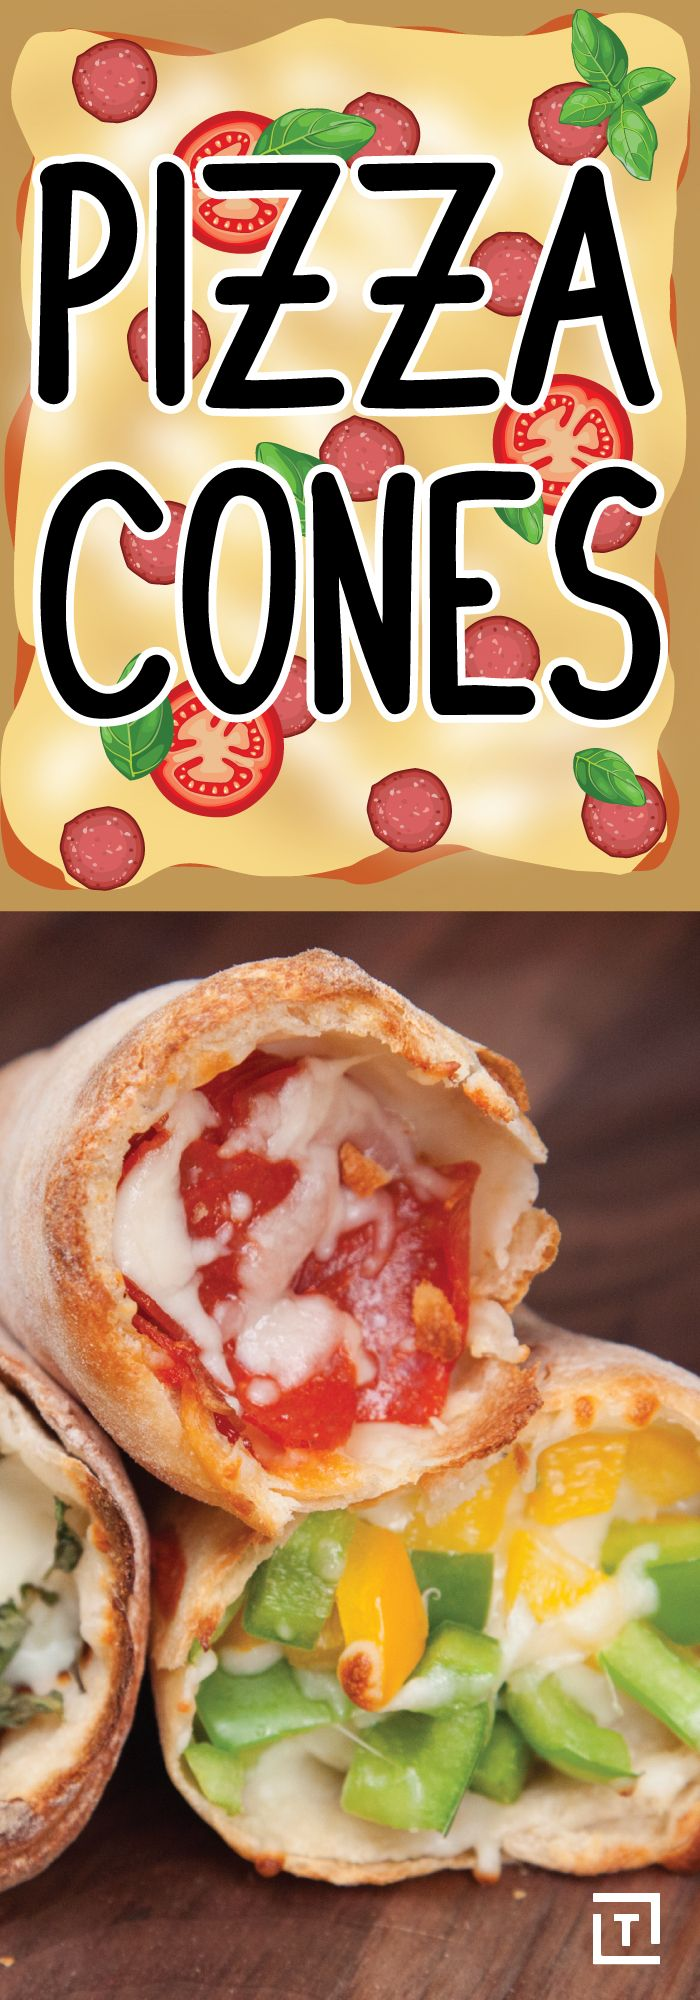 We think rolling up pizza into savory cones is the best thing to happen to pizza since, well, pizza. Food Steez is showing us how to make pizza cones at home by rolling up mozzarella, pepperoni, bell peppers, and marinara, into a cone that's sure to satisfy any appetite.